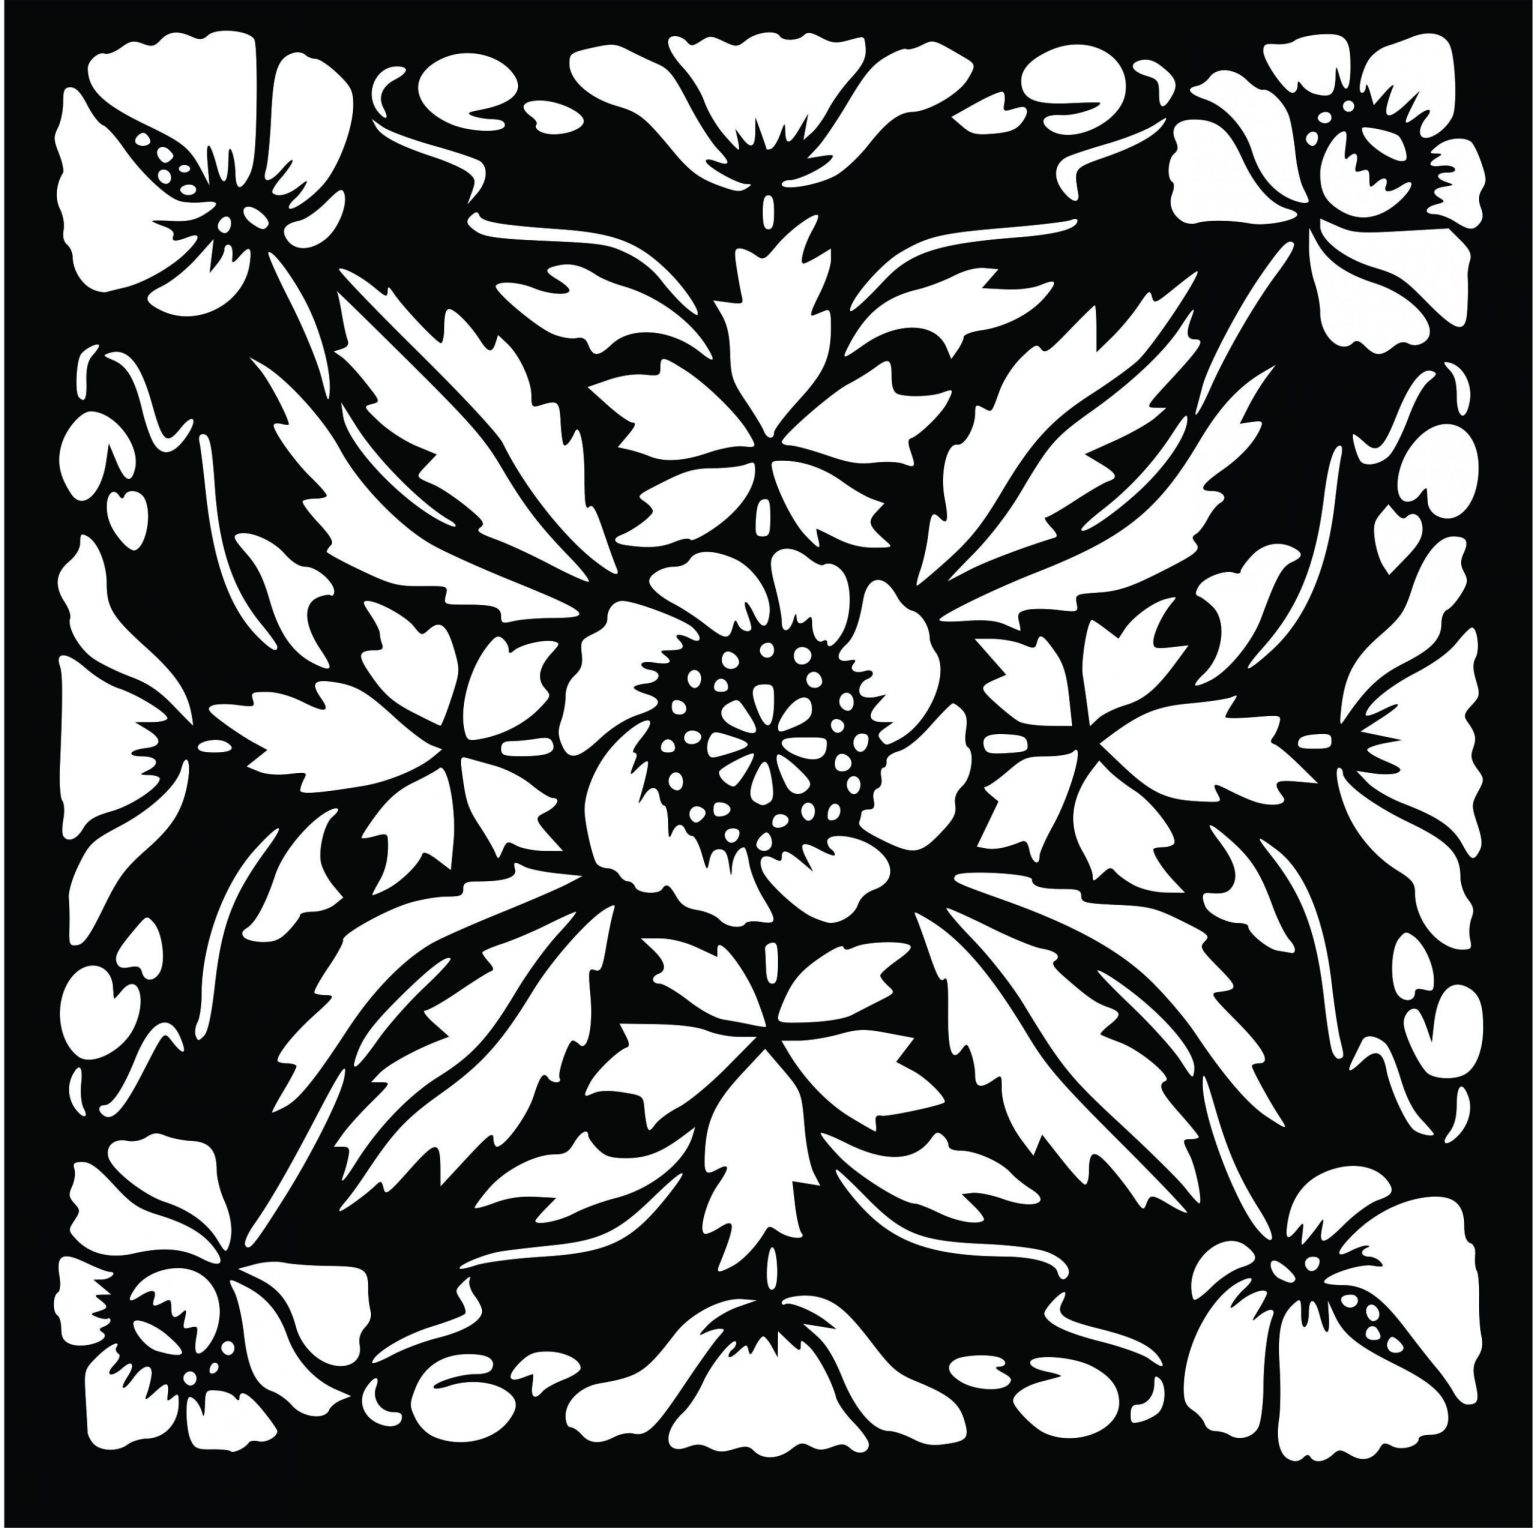 Decorative Screen Patterns For Laser Cutting 37 Free DXF File